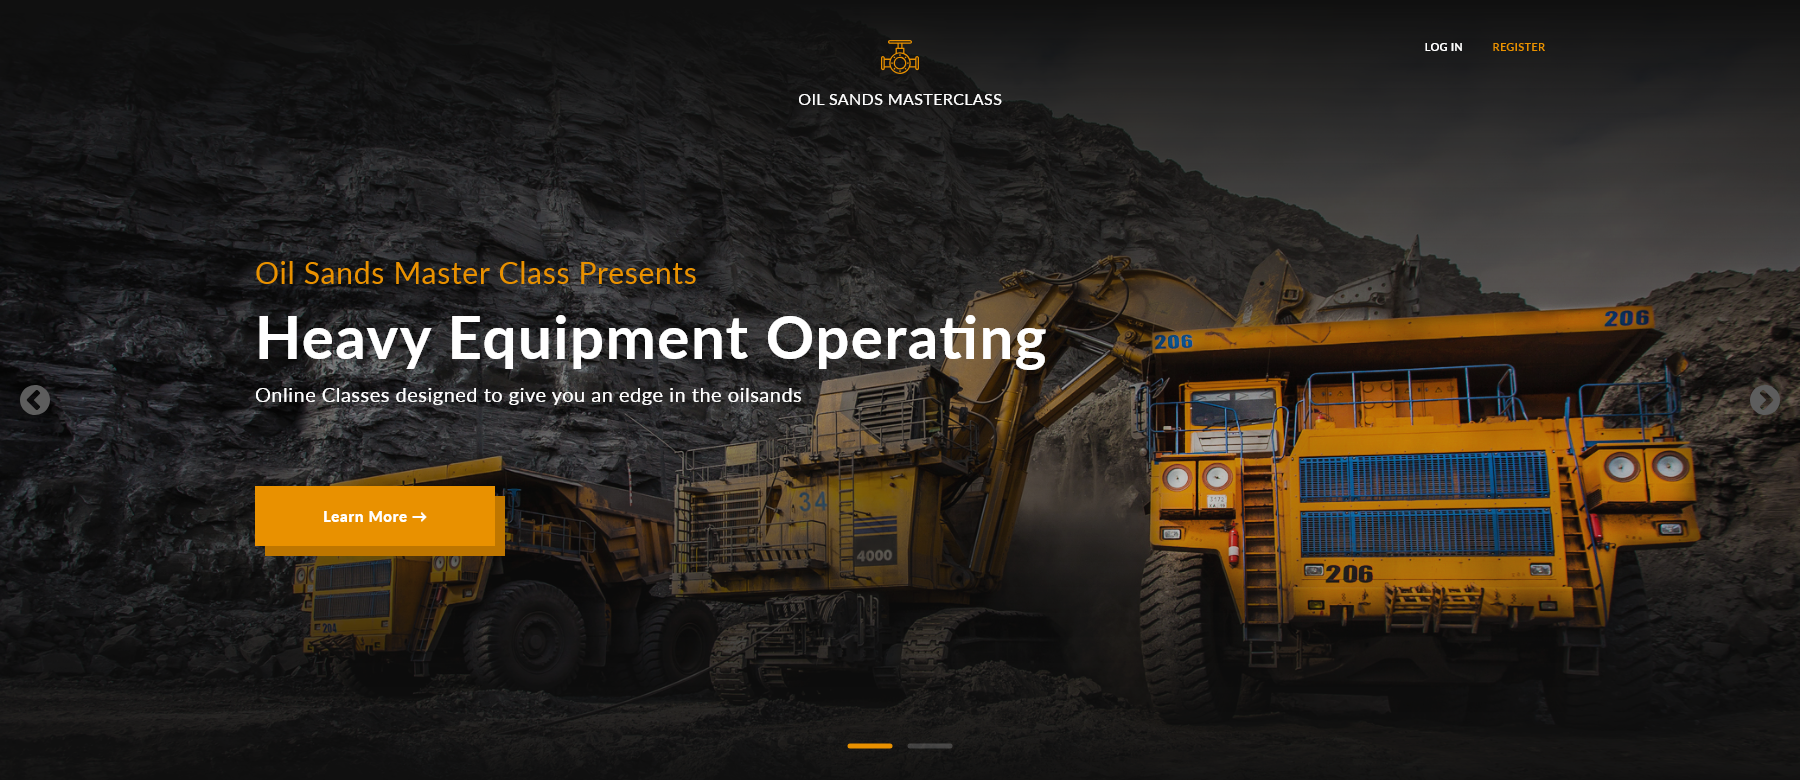 Oil Sands Master Class web design